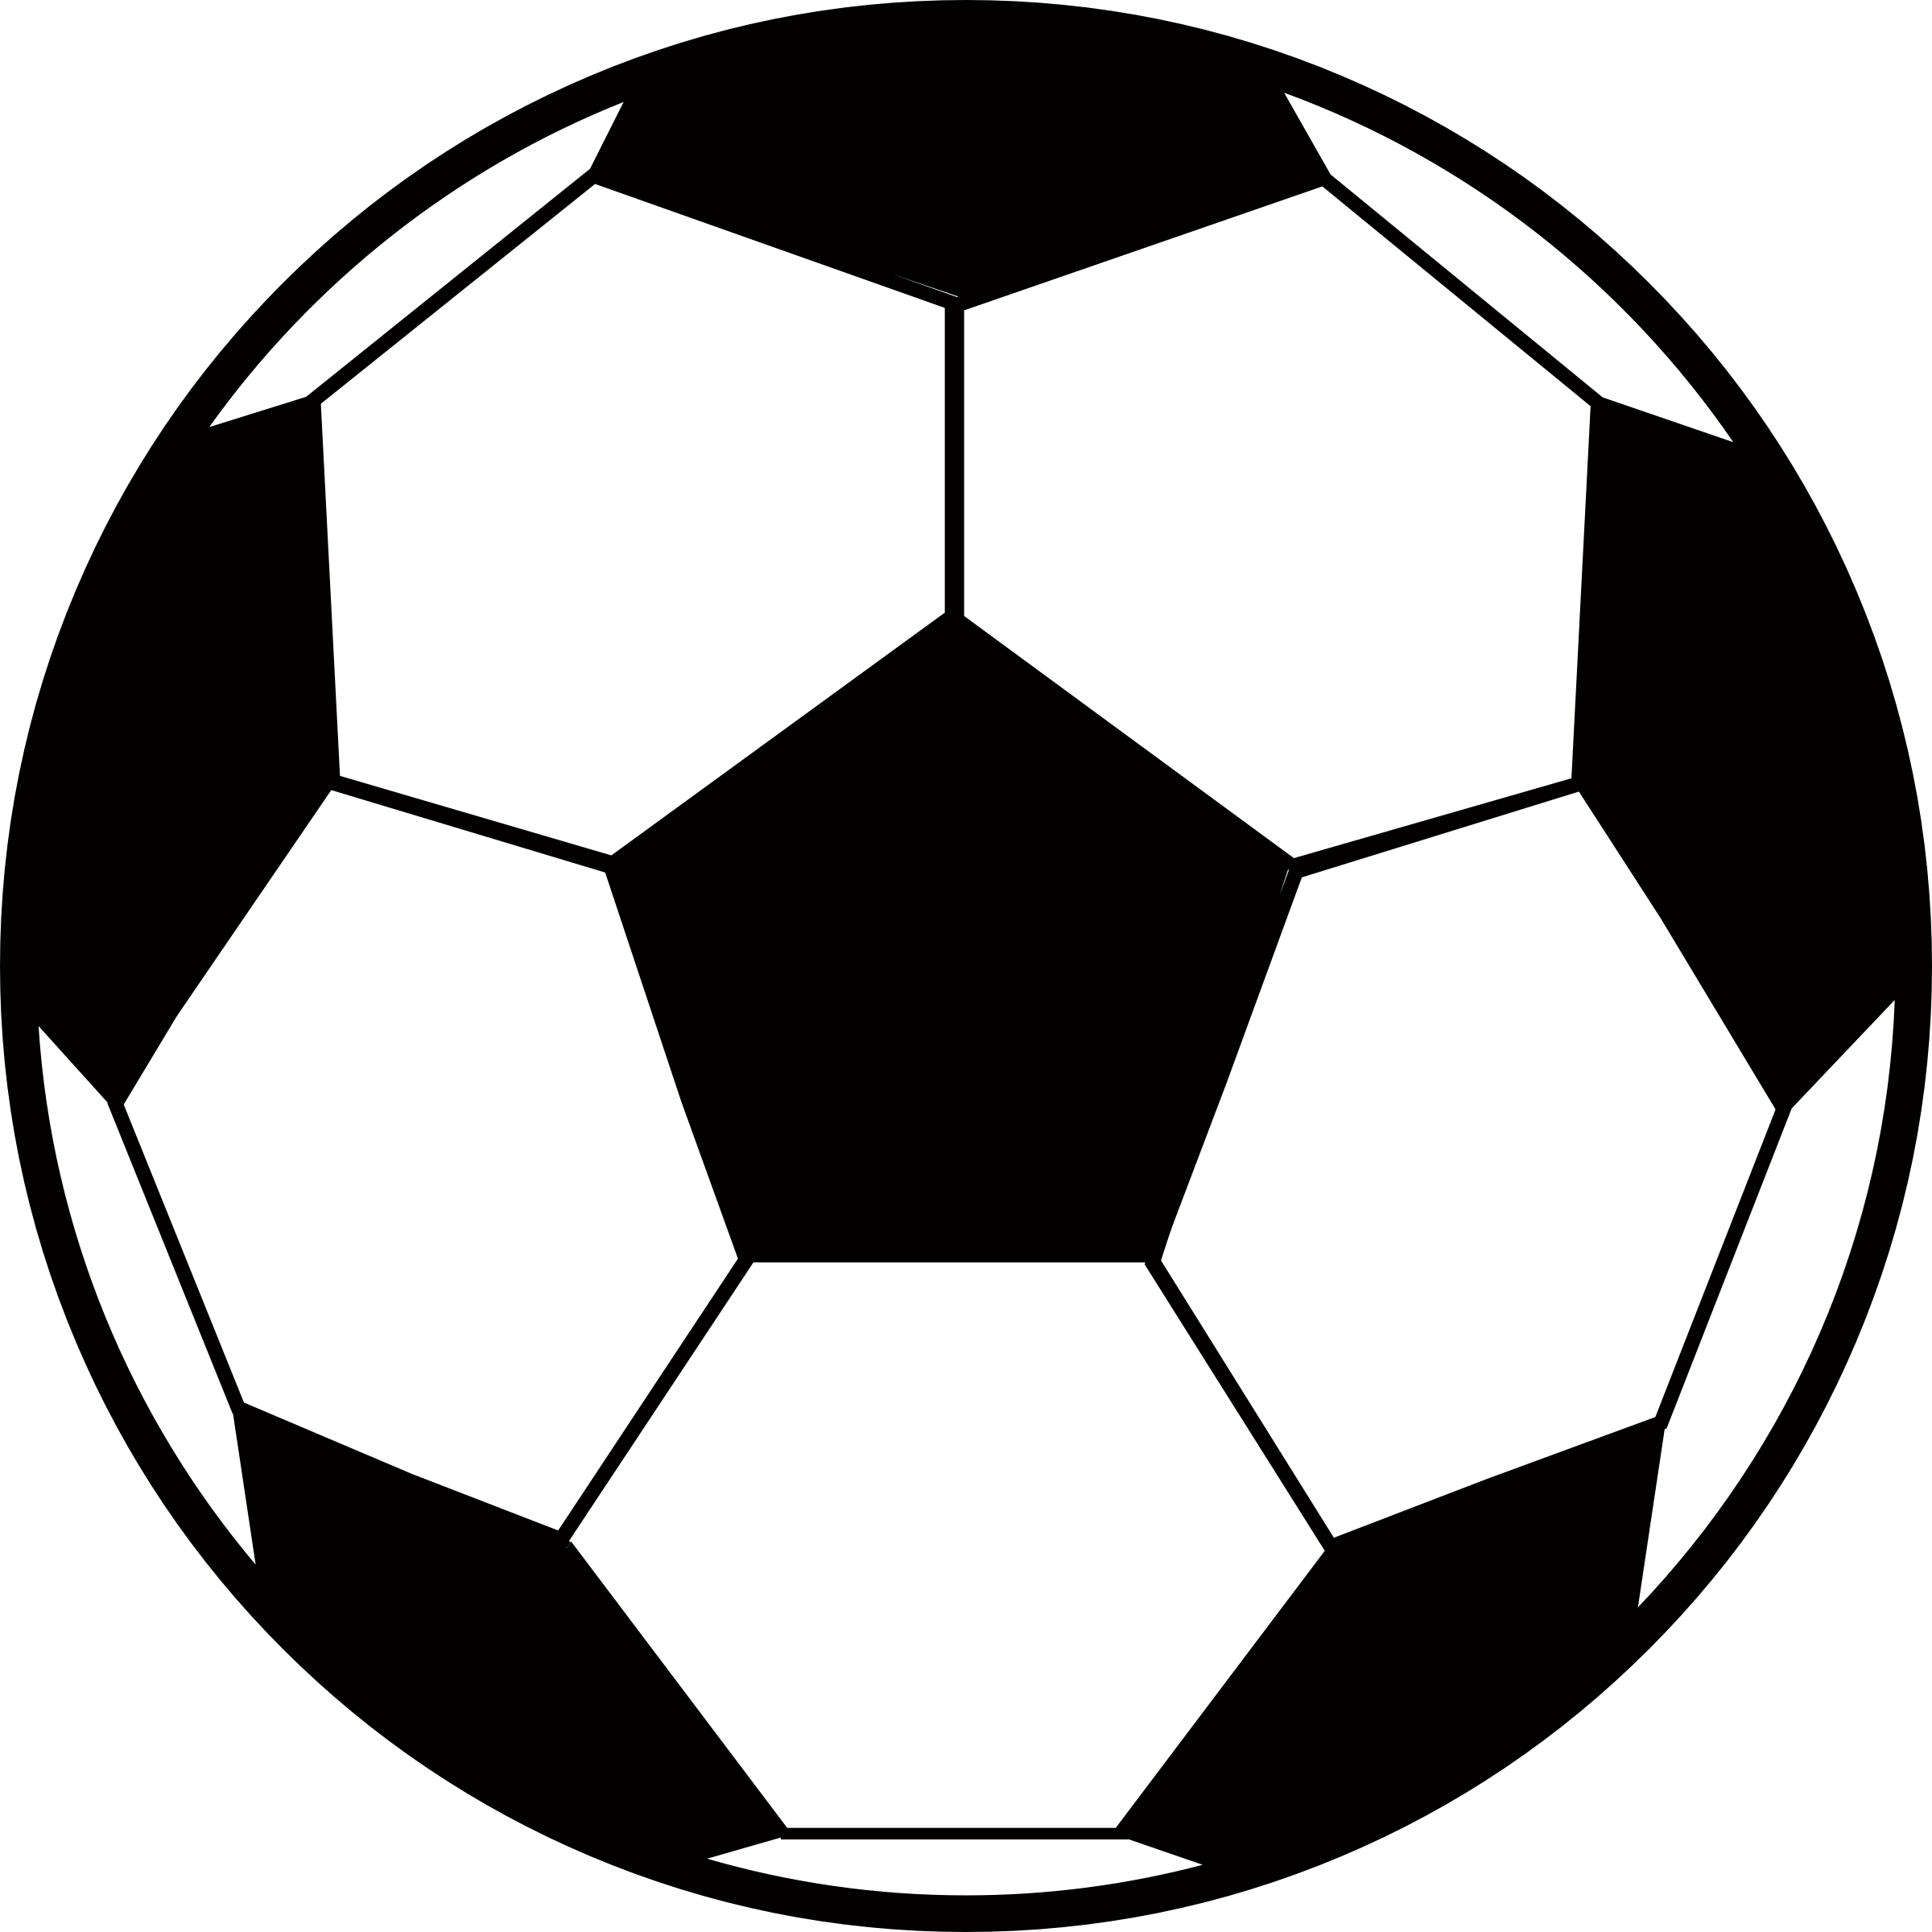 Clipart of a soccer ball png black and white download Clipart - Soccer Ball (#2) png black and white download